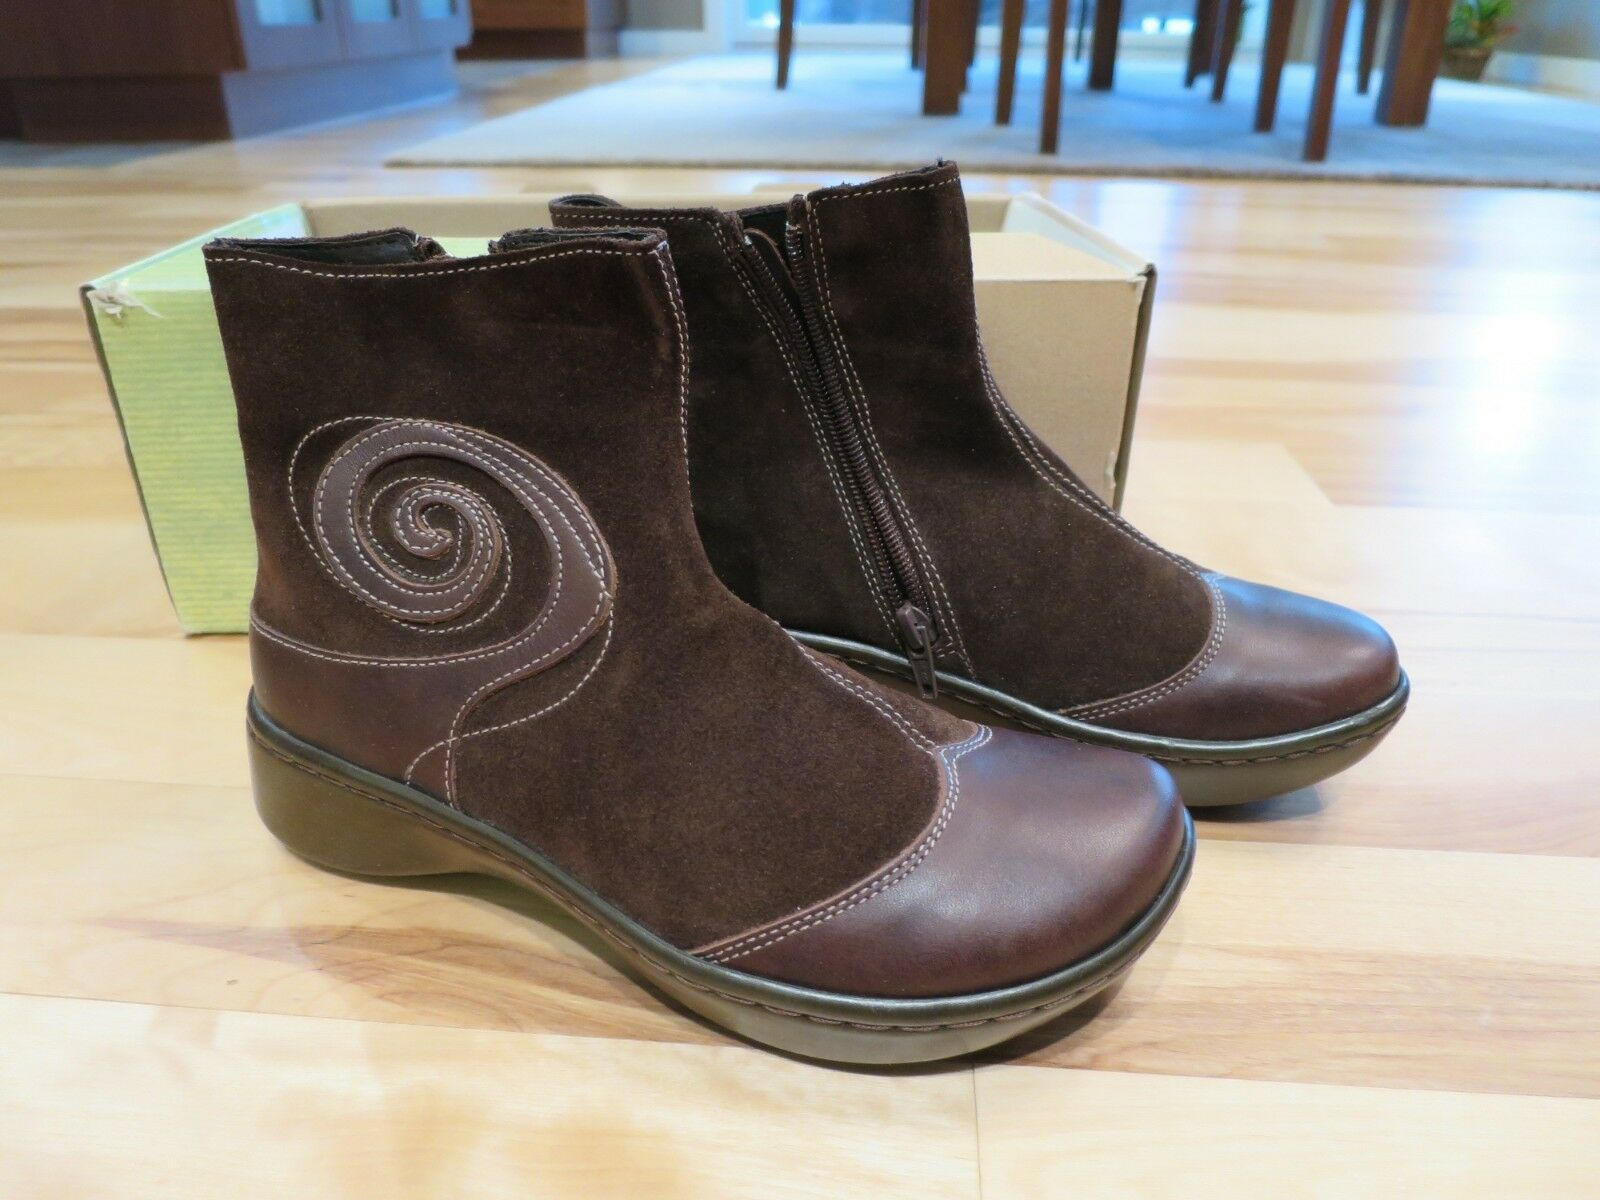 Naot Oyster  Suede Leather Ankle stivali - Toffee Marronee - New - Dimensione 36 donna  più economico